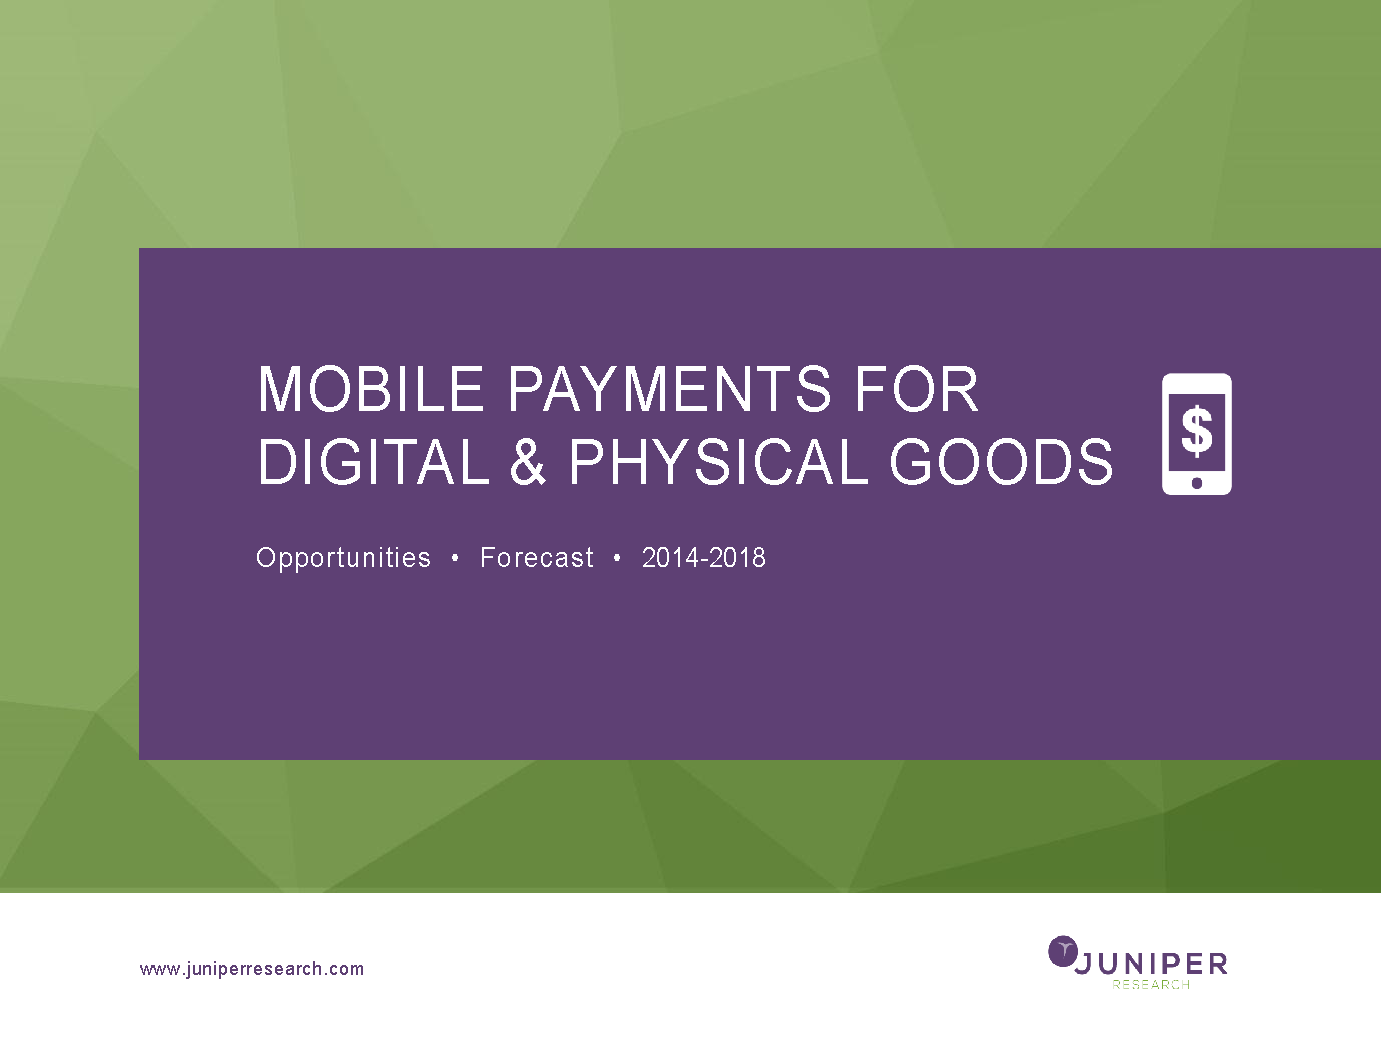 Mobile Payments for Digital & Physical Goods